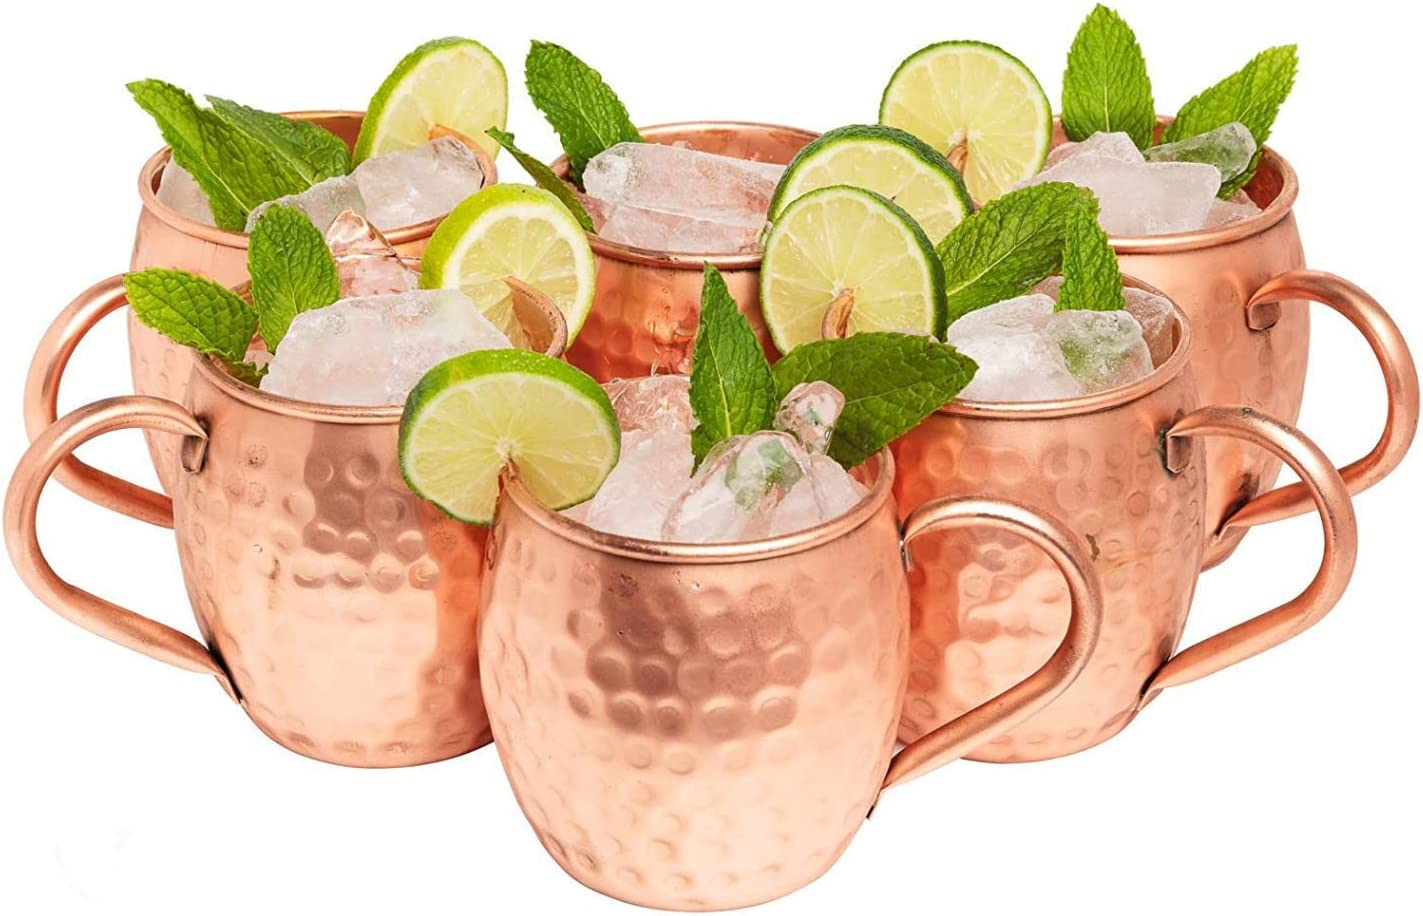 Kitchen Science Moscow Mule Copper Mugs - 16 Ounce, Set of 6 gift set- 100% Artisan Handcrafted, Food Safe Pure Solid Copper Mugs with Traditional and Timeless Design